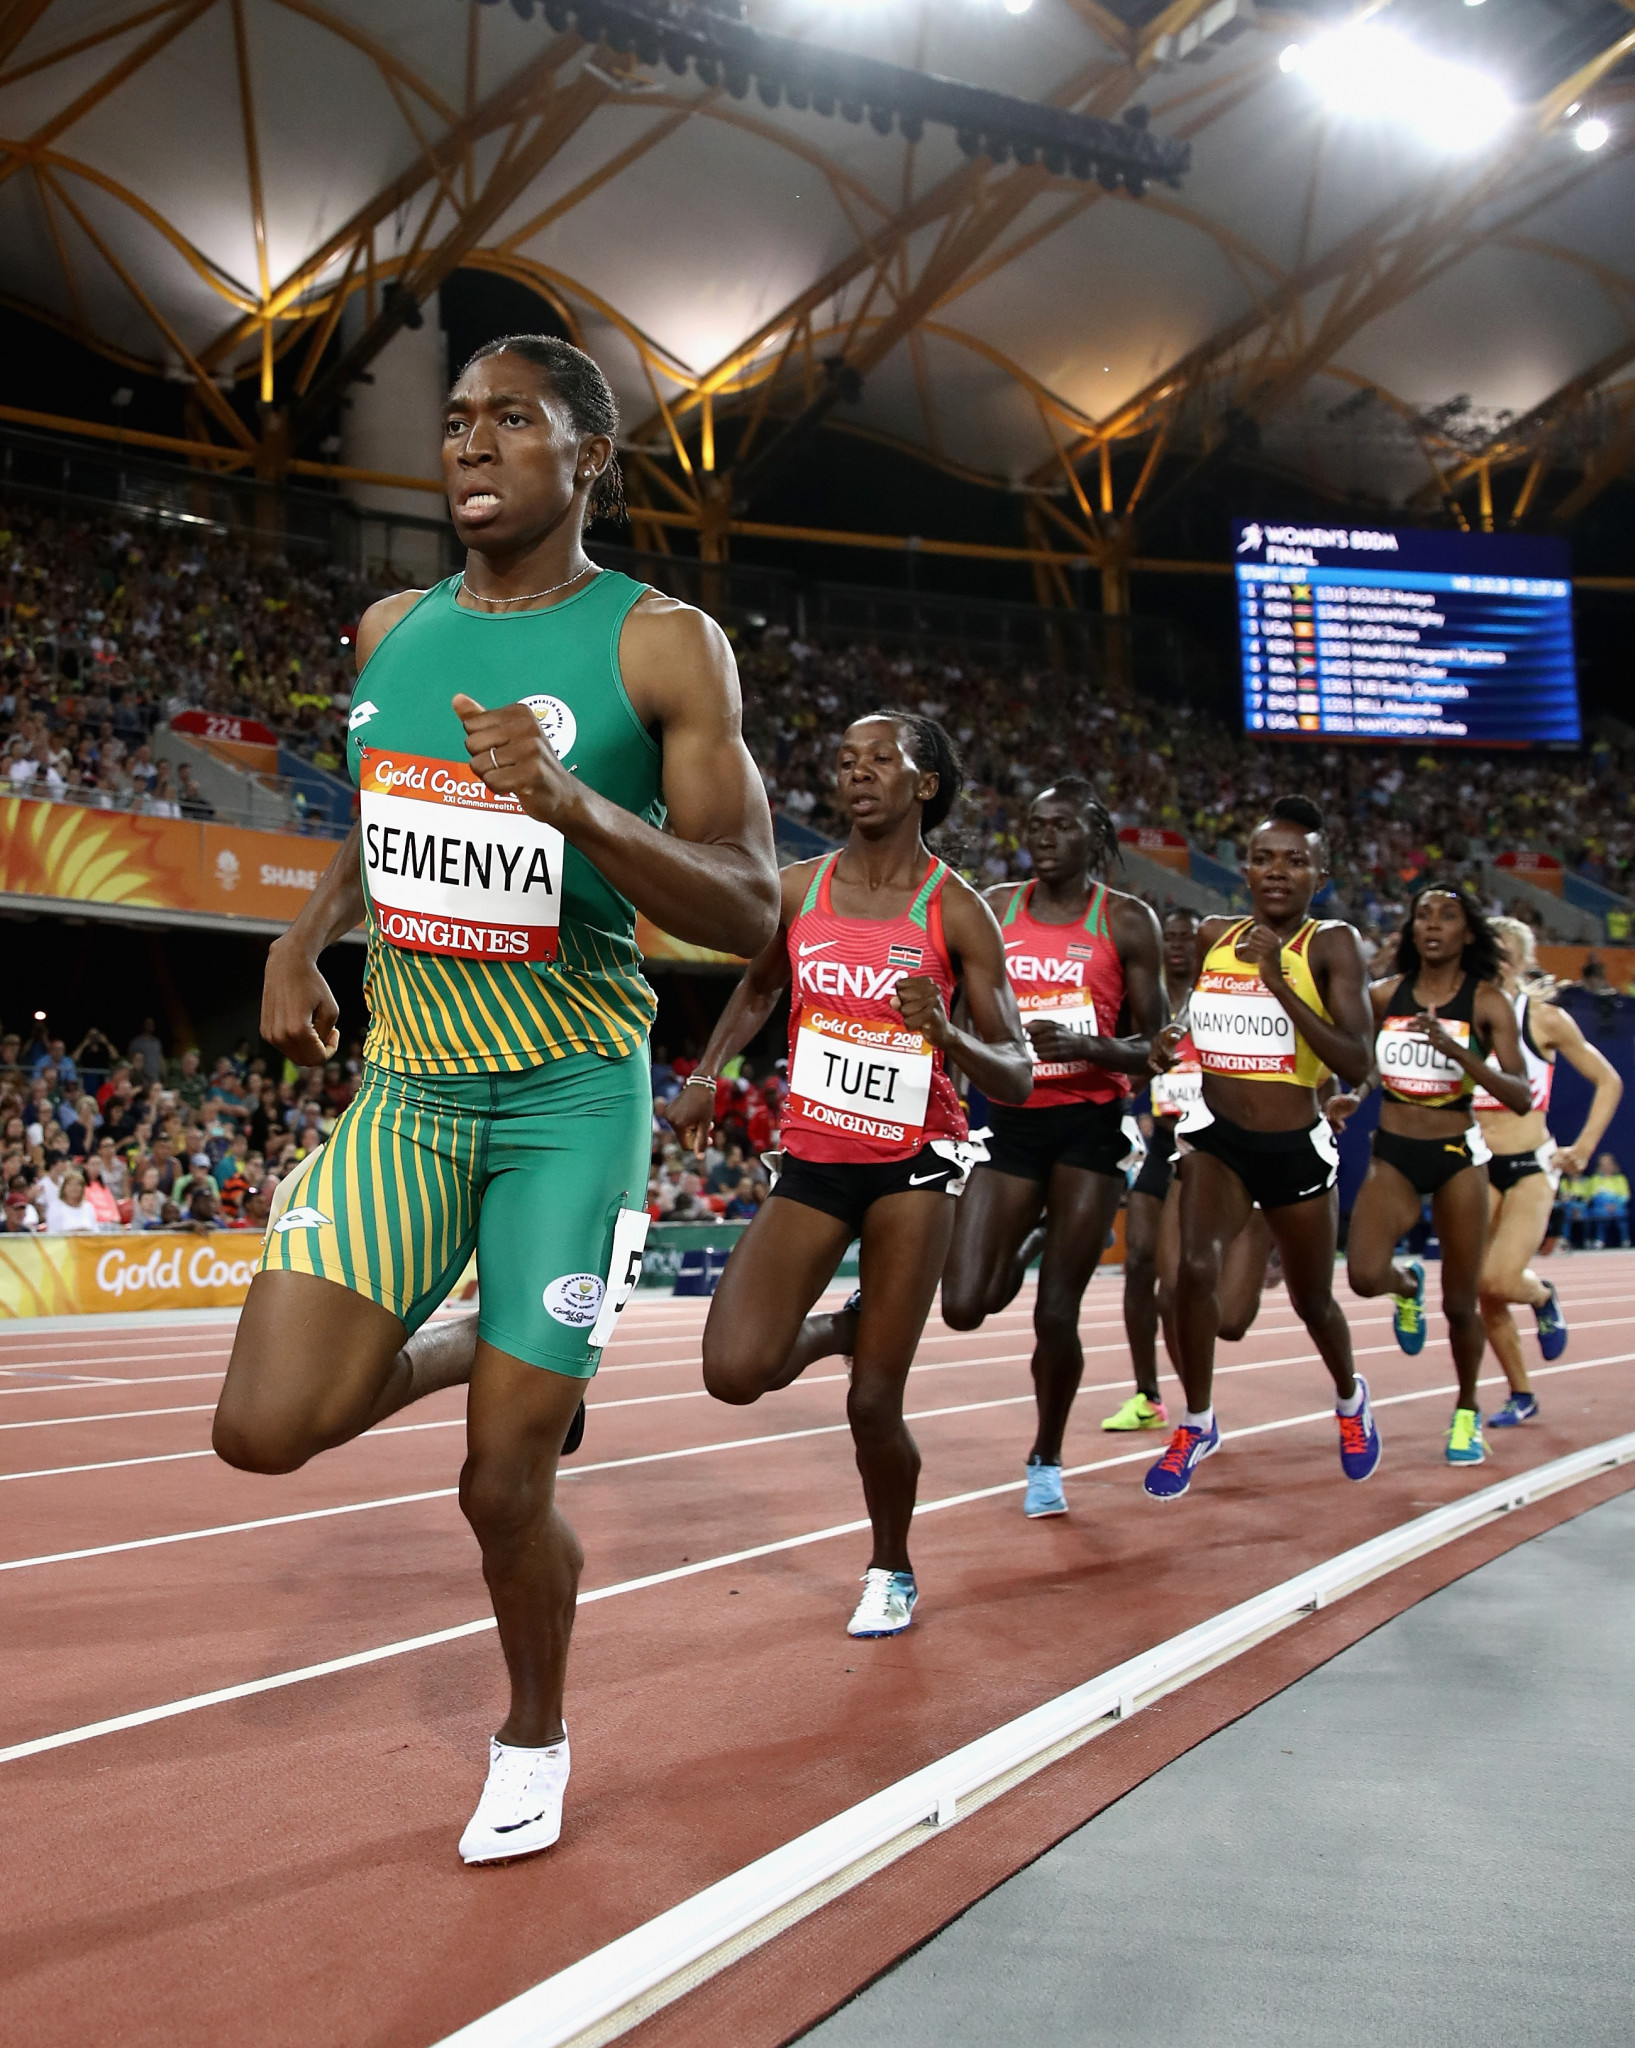 Caster Semenya, en route to Commonwealth 800m gold last month, has received widespread support within South Africa following the recent IAAF ruling on restricting testosterone levels in female athletes ©Getty Images